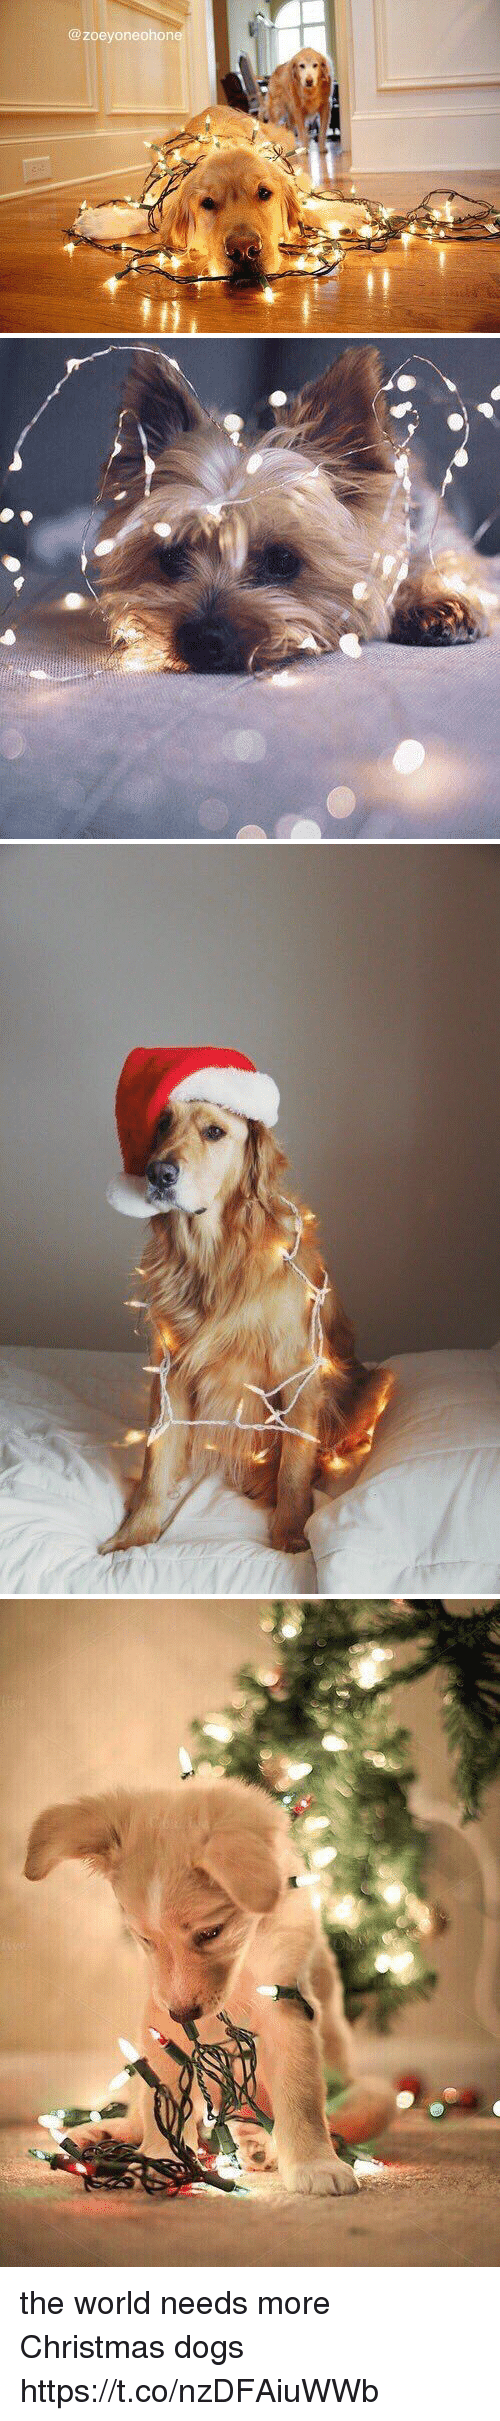 Christmas, Dogs, and World: @ zoeyoneohone the world needs more Christmas dogs https://t.co/nzDFAiuWWb